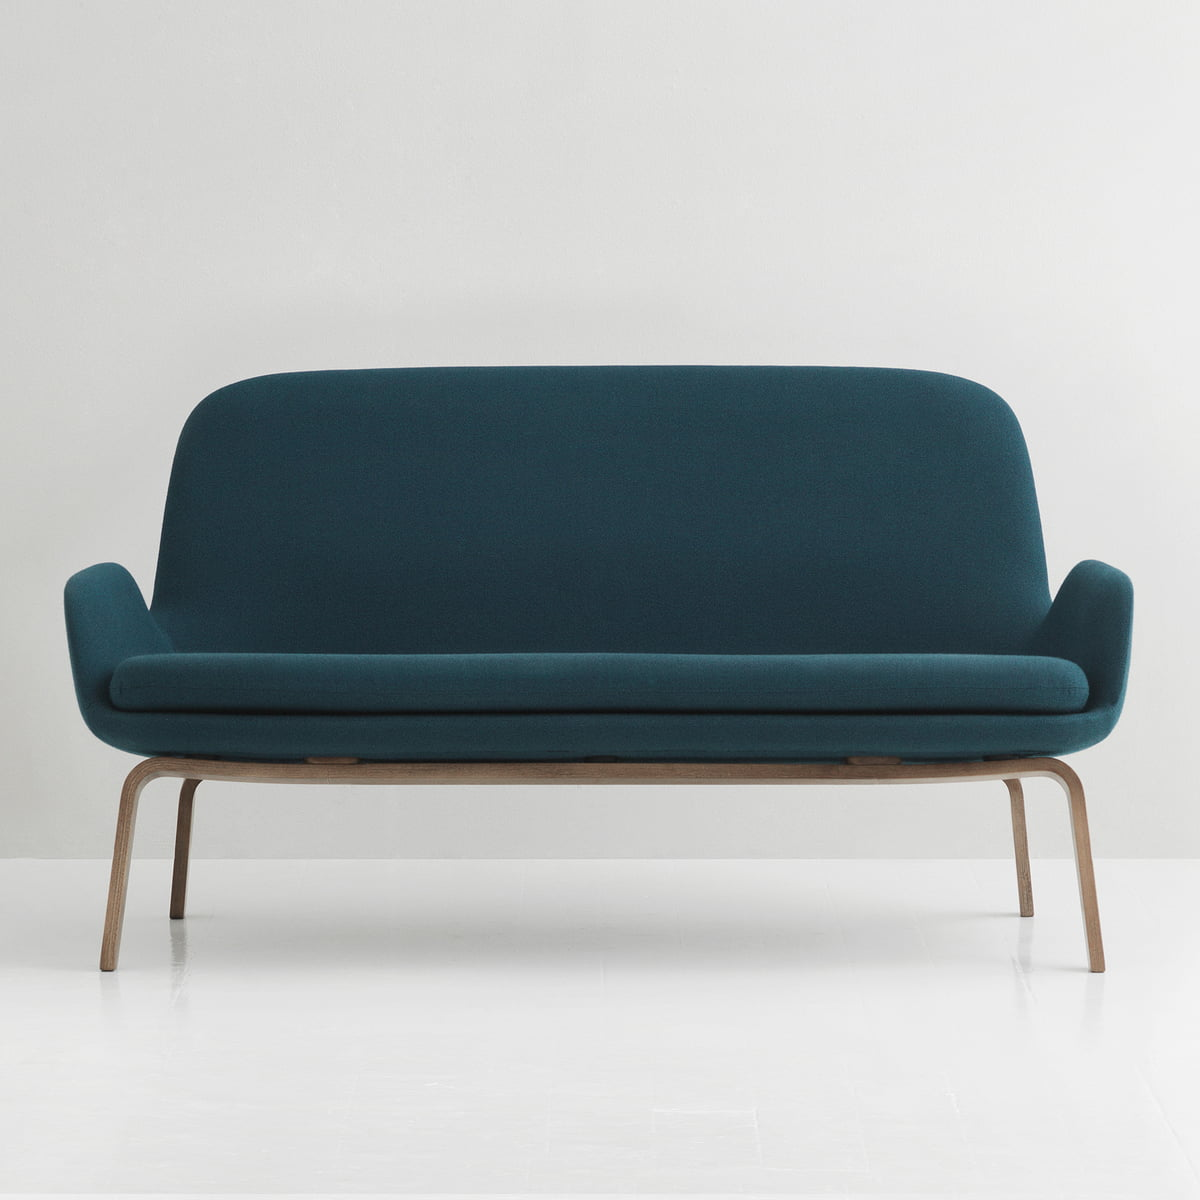 era sofa by normann copenhagen at the shop. Black Bedroom Furniture Sets. Home Design Ideas